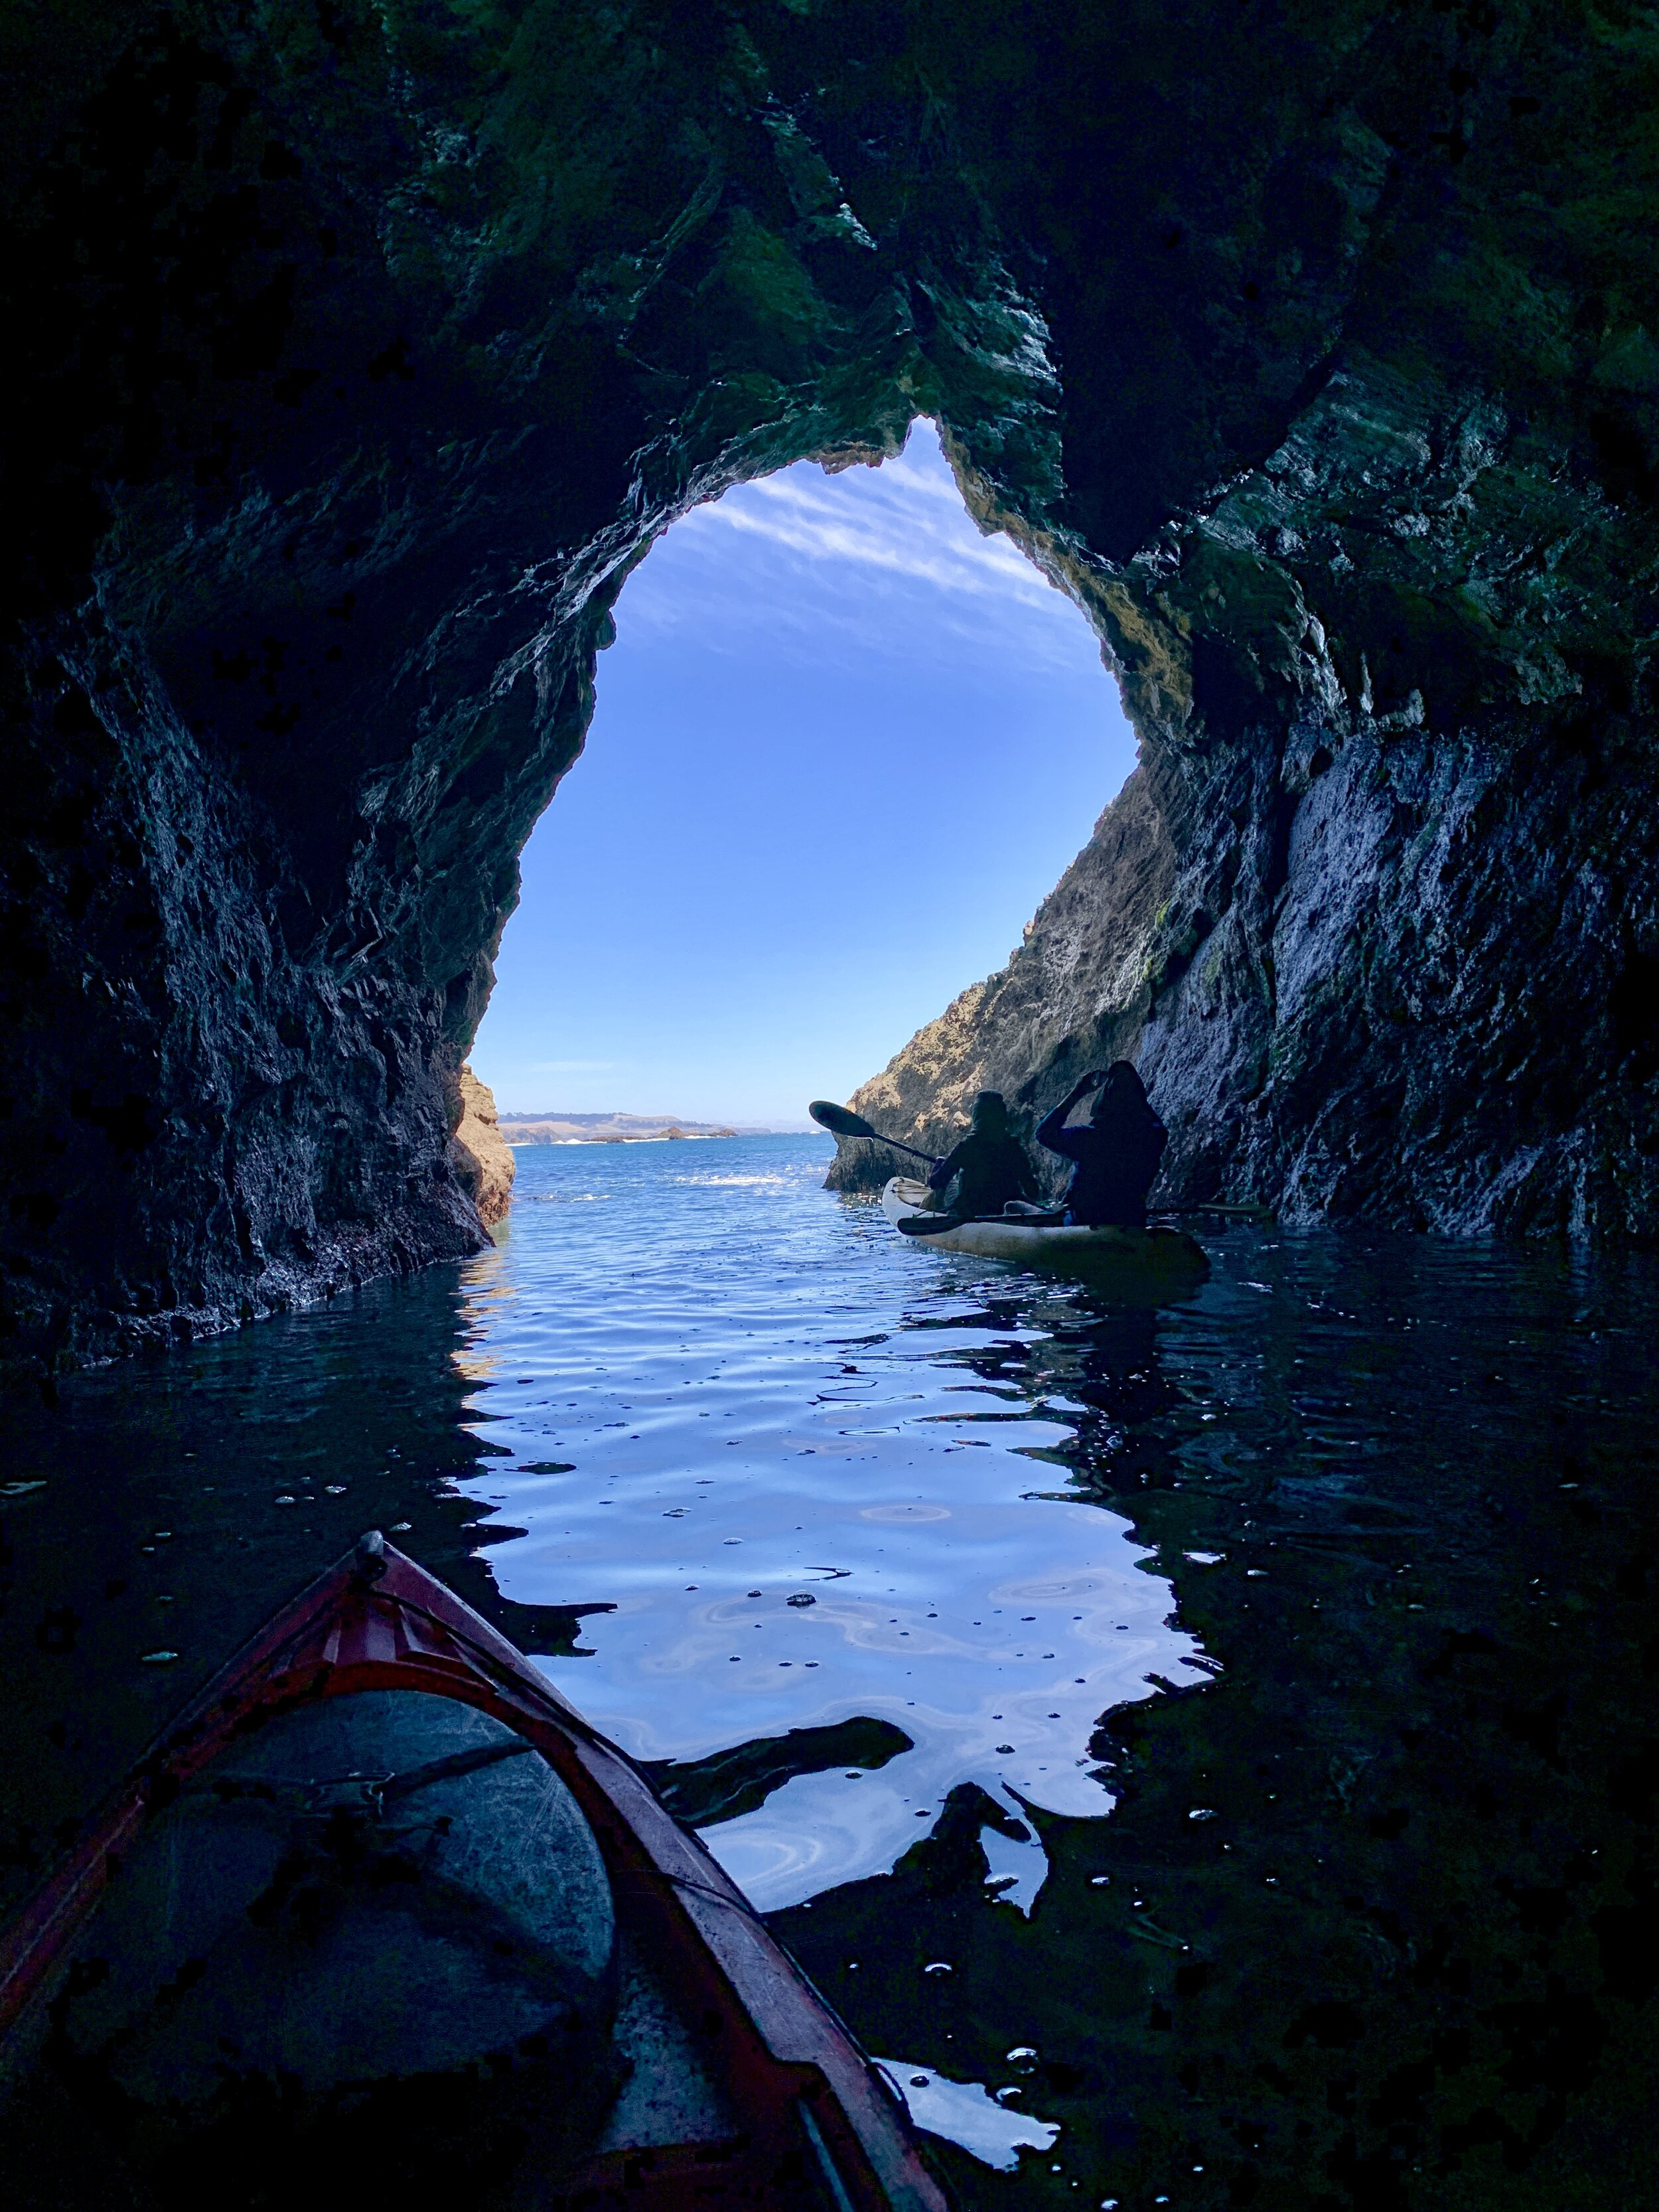 leaving a sea cave on the sea cave kayak tour